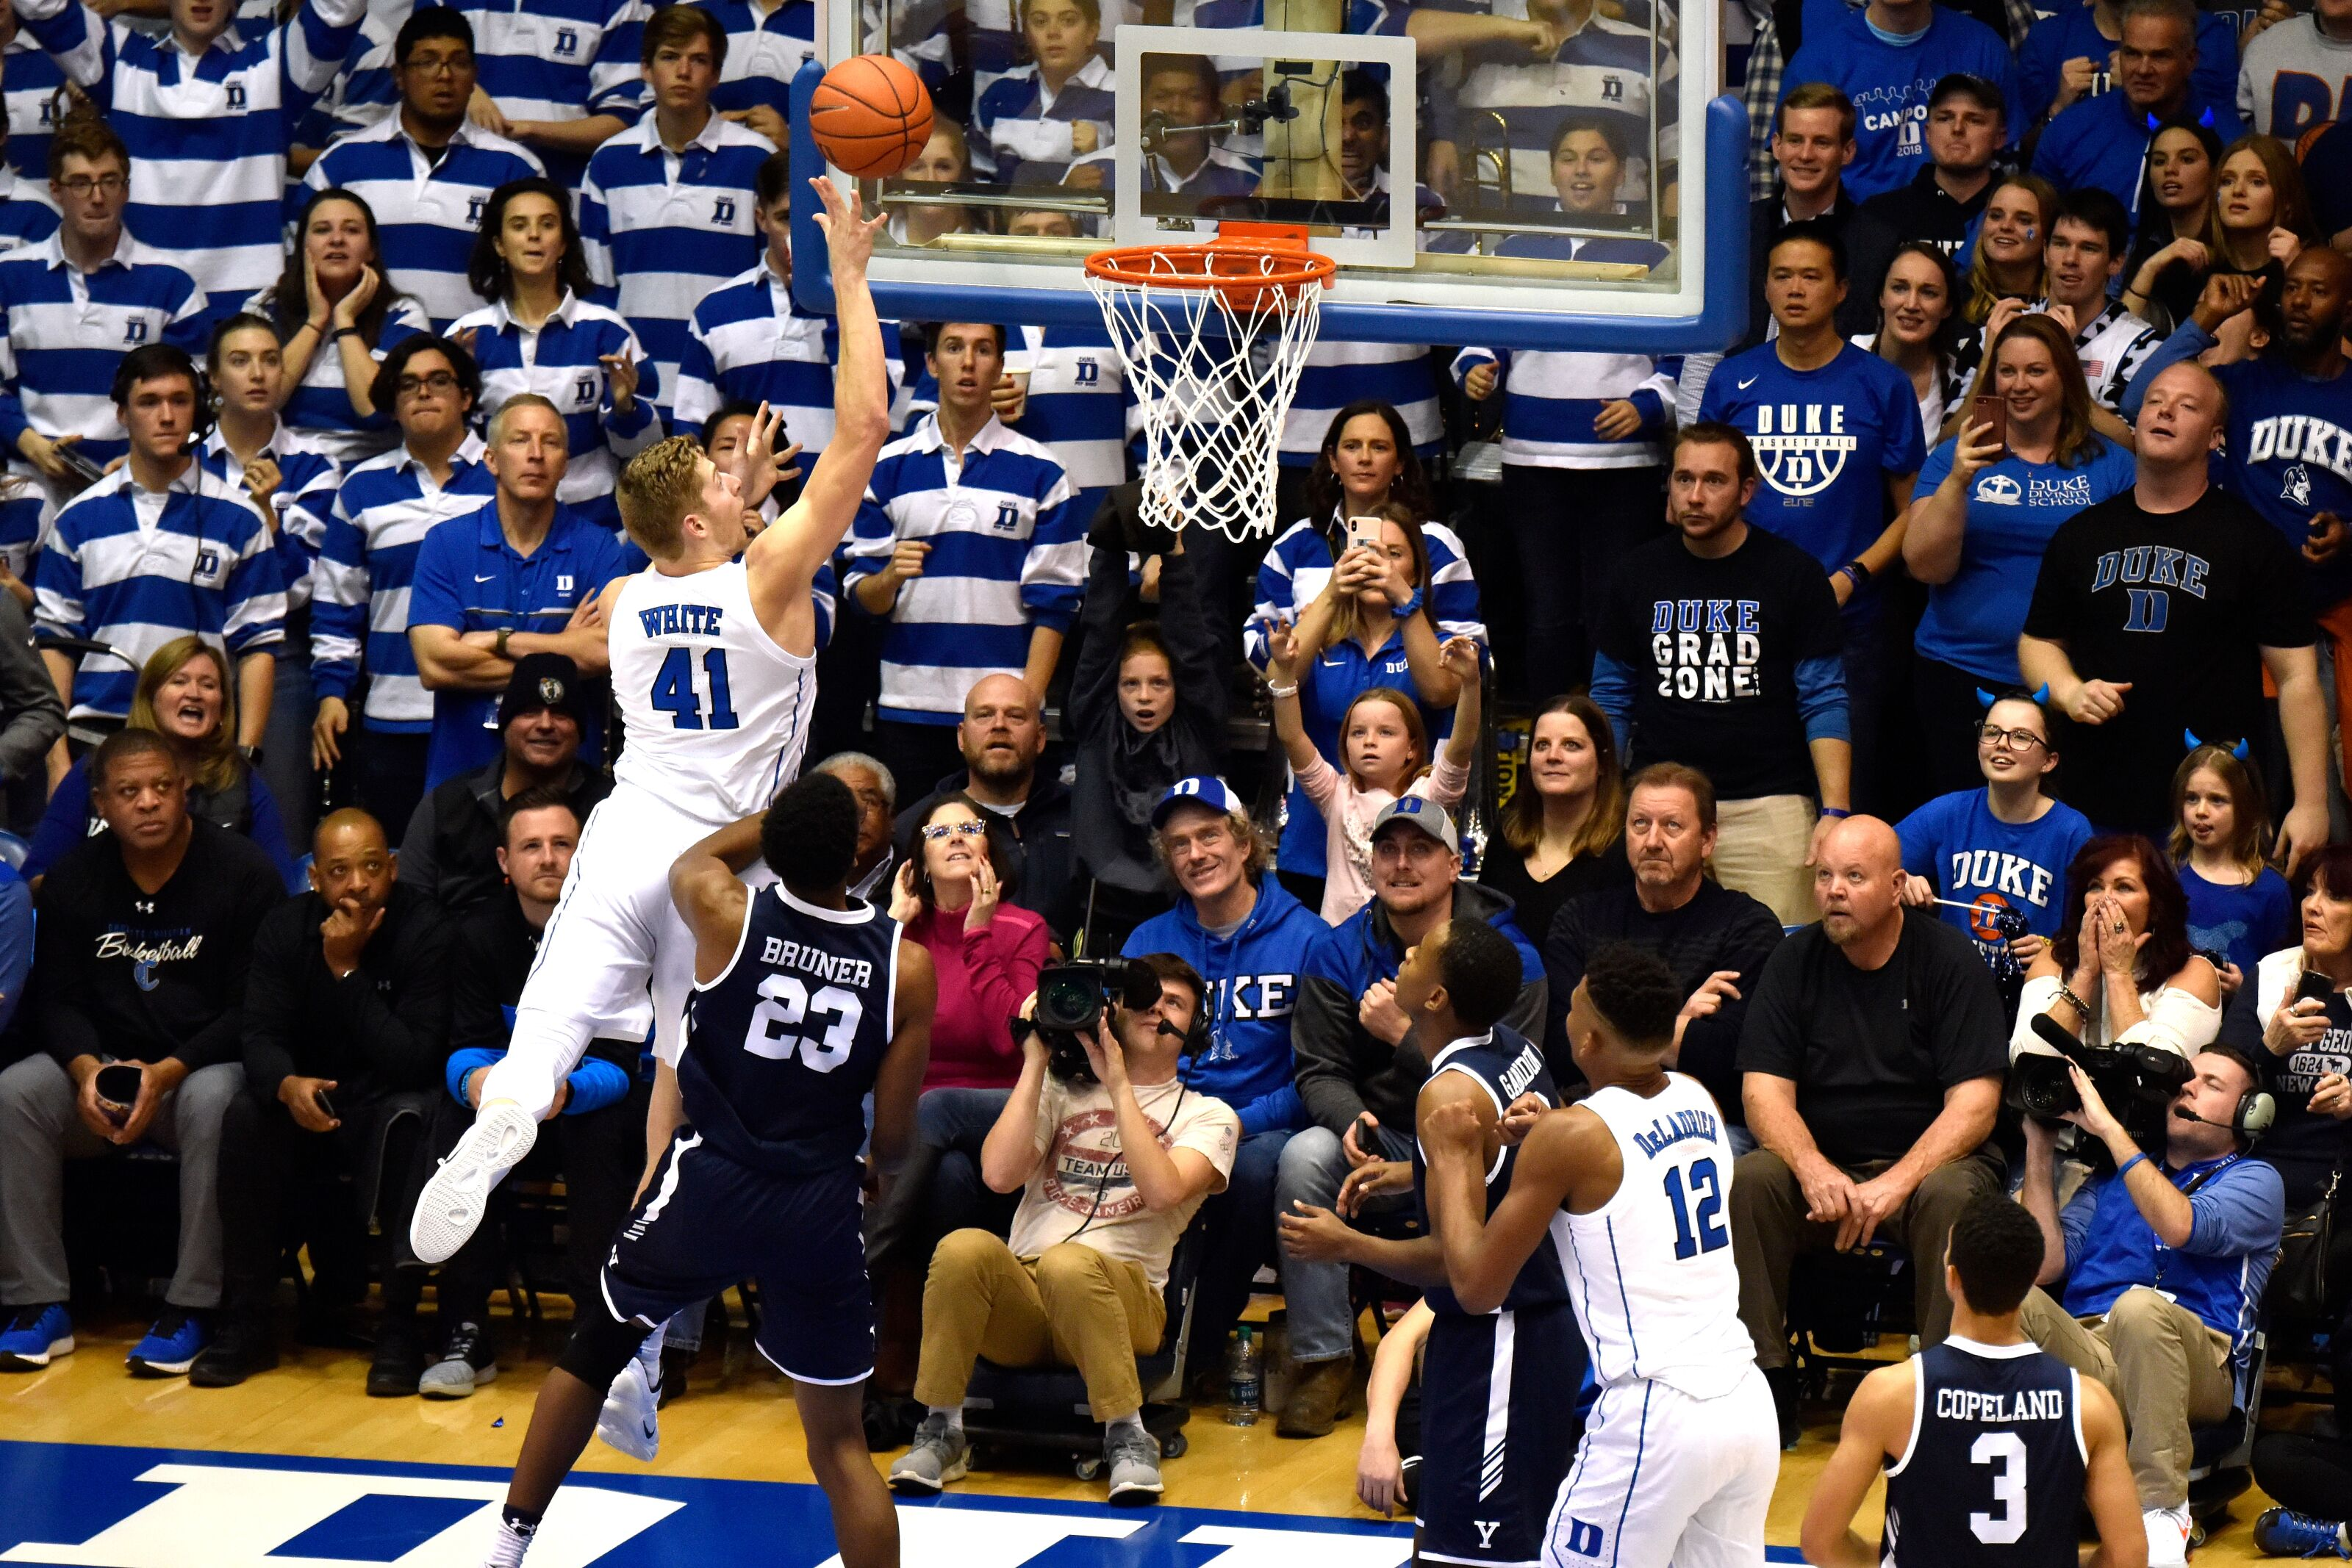 d6398b422070 Duke Basketball  Blue Devils roll into bye week with win over Yale